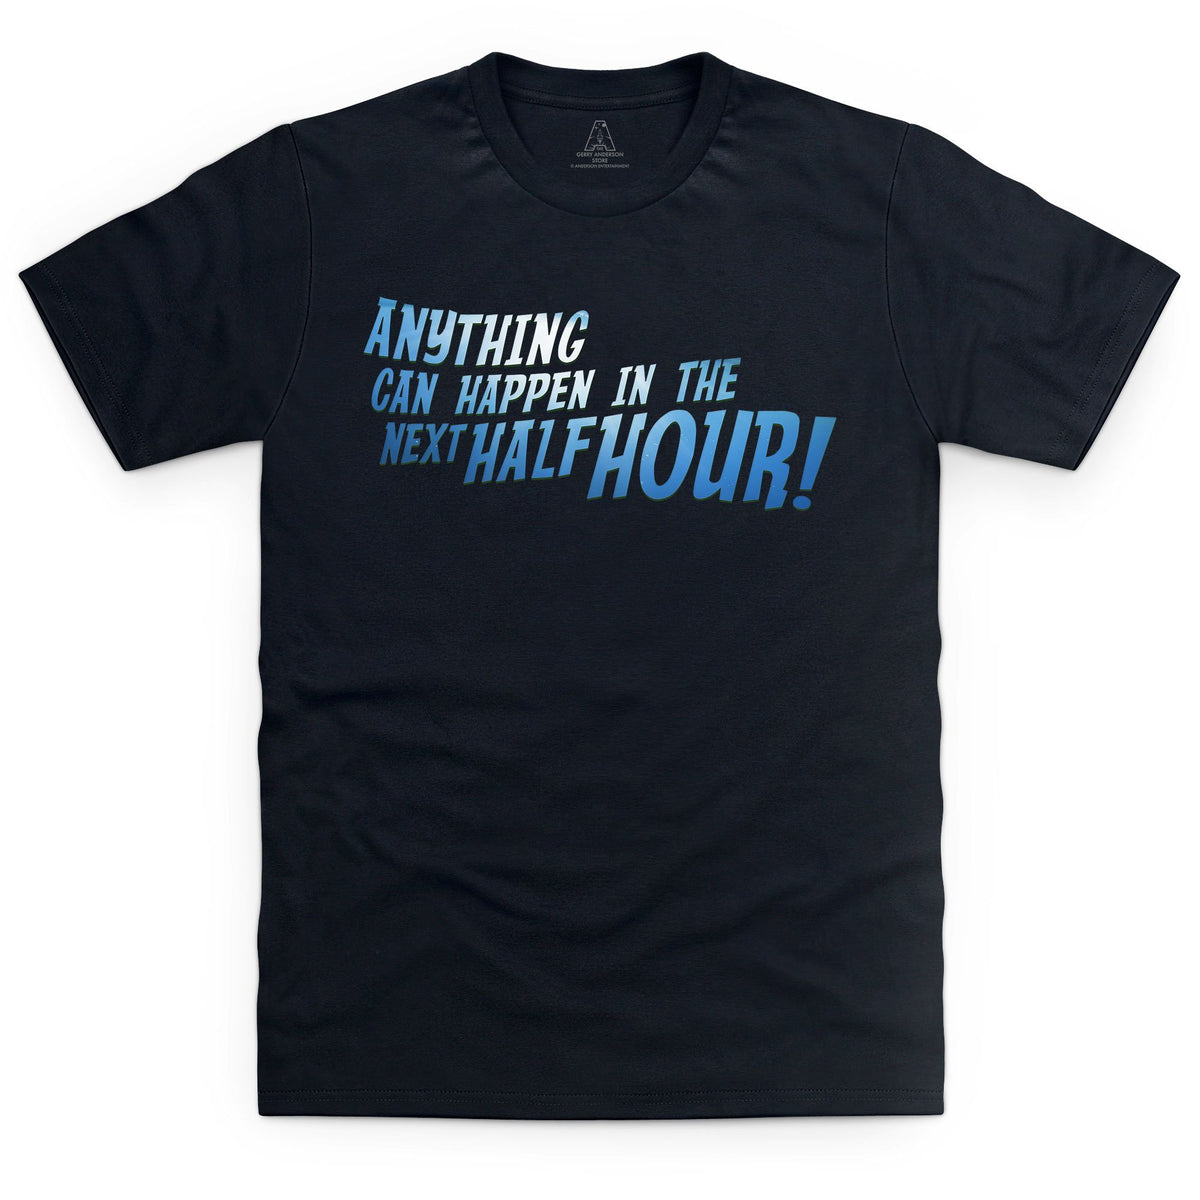 Anything Can Happen In The Next Half Hour! Kid's T-Shirt - The Gerry Anderson Store